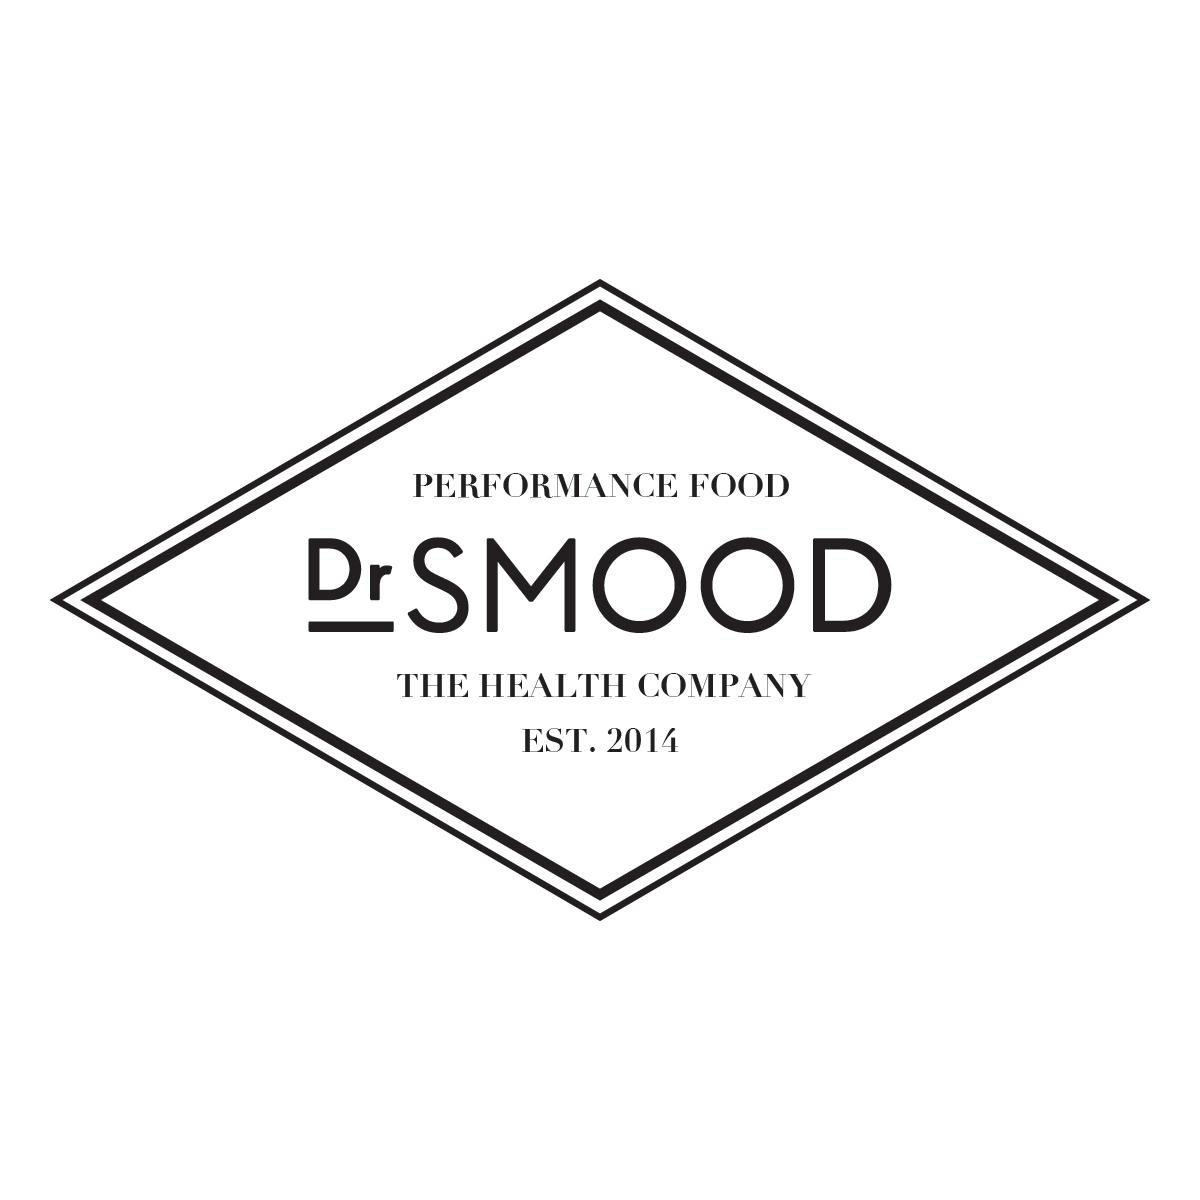 Dr Smood